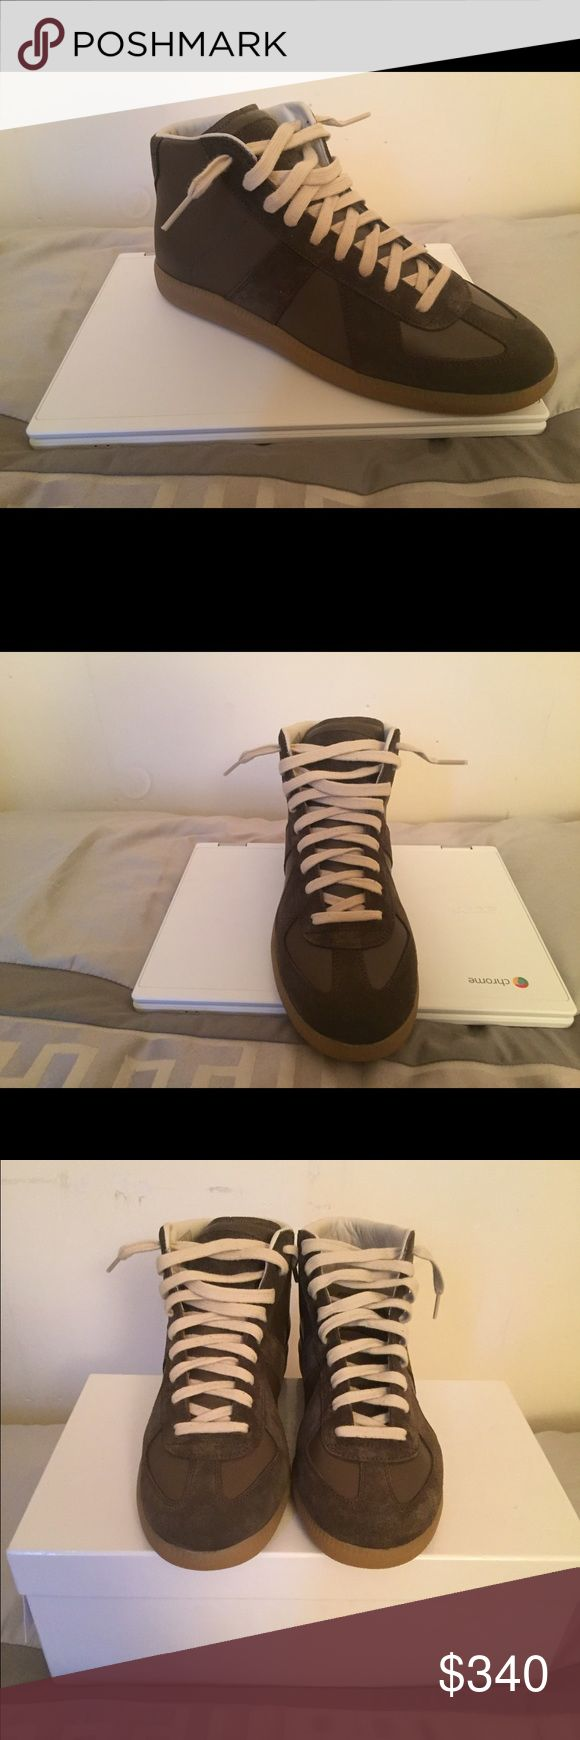 Mason margiela sneakers Brand new fresh out the box never worn. Maison Margiela Shoes Sneakers